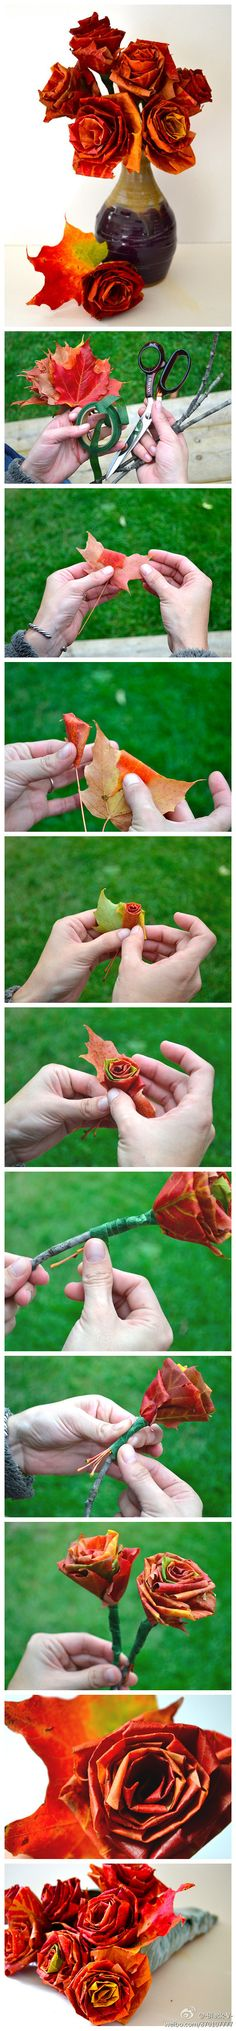 Great idea for fall decorating or a fall wedding.